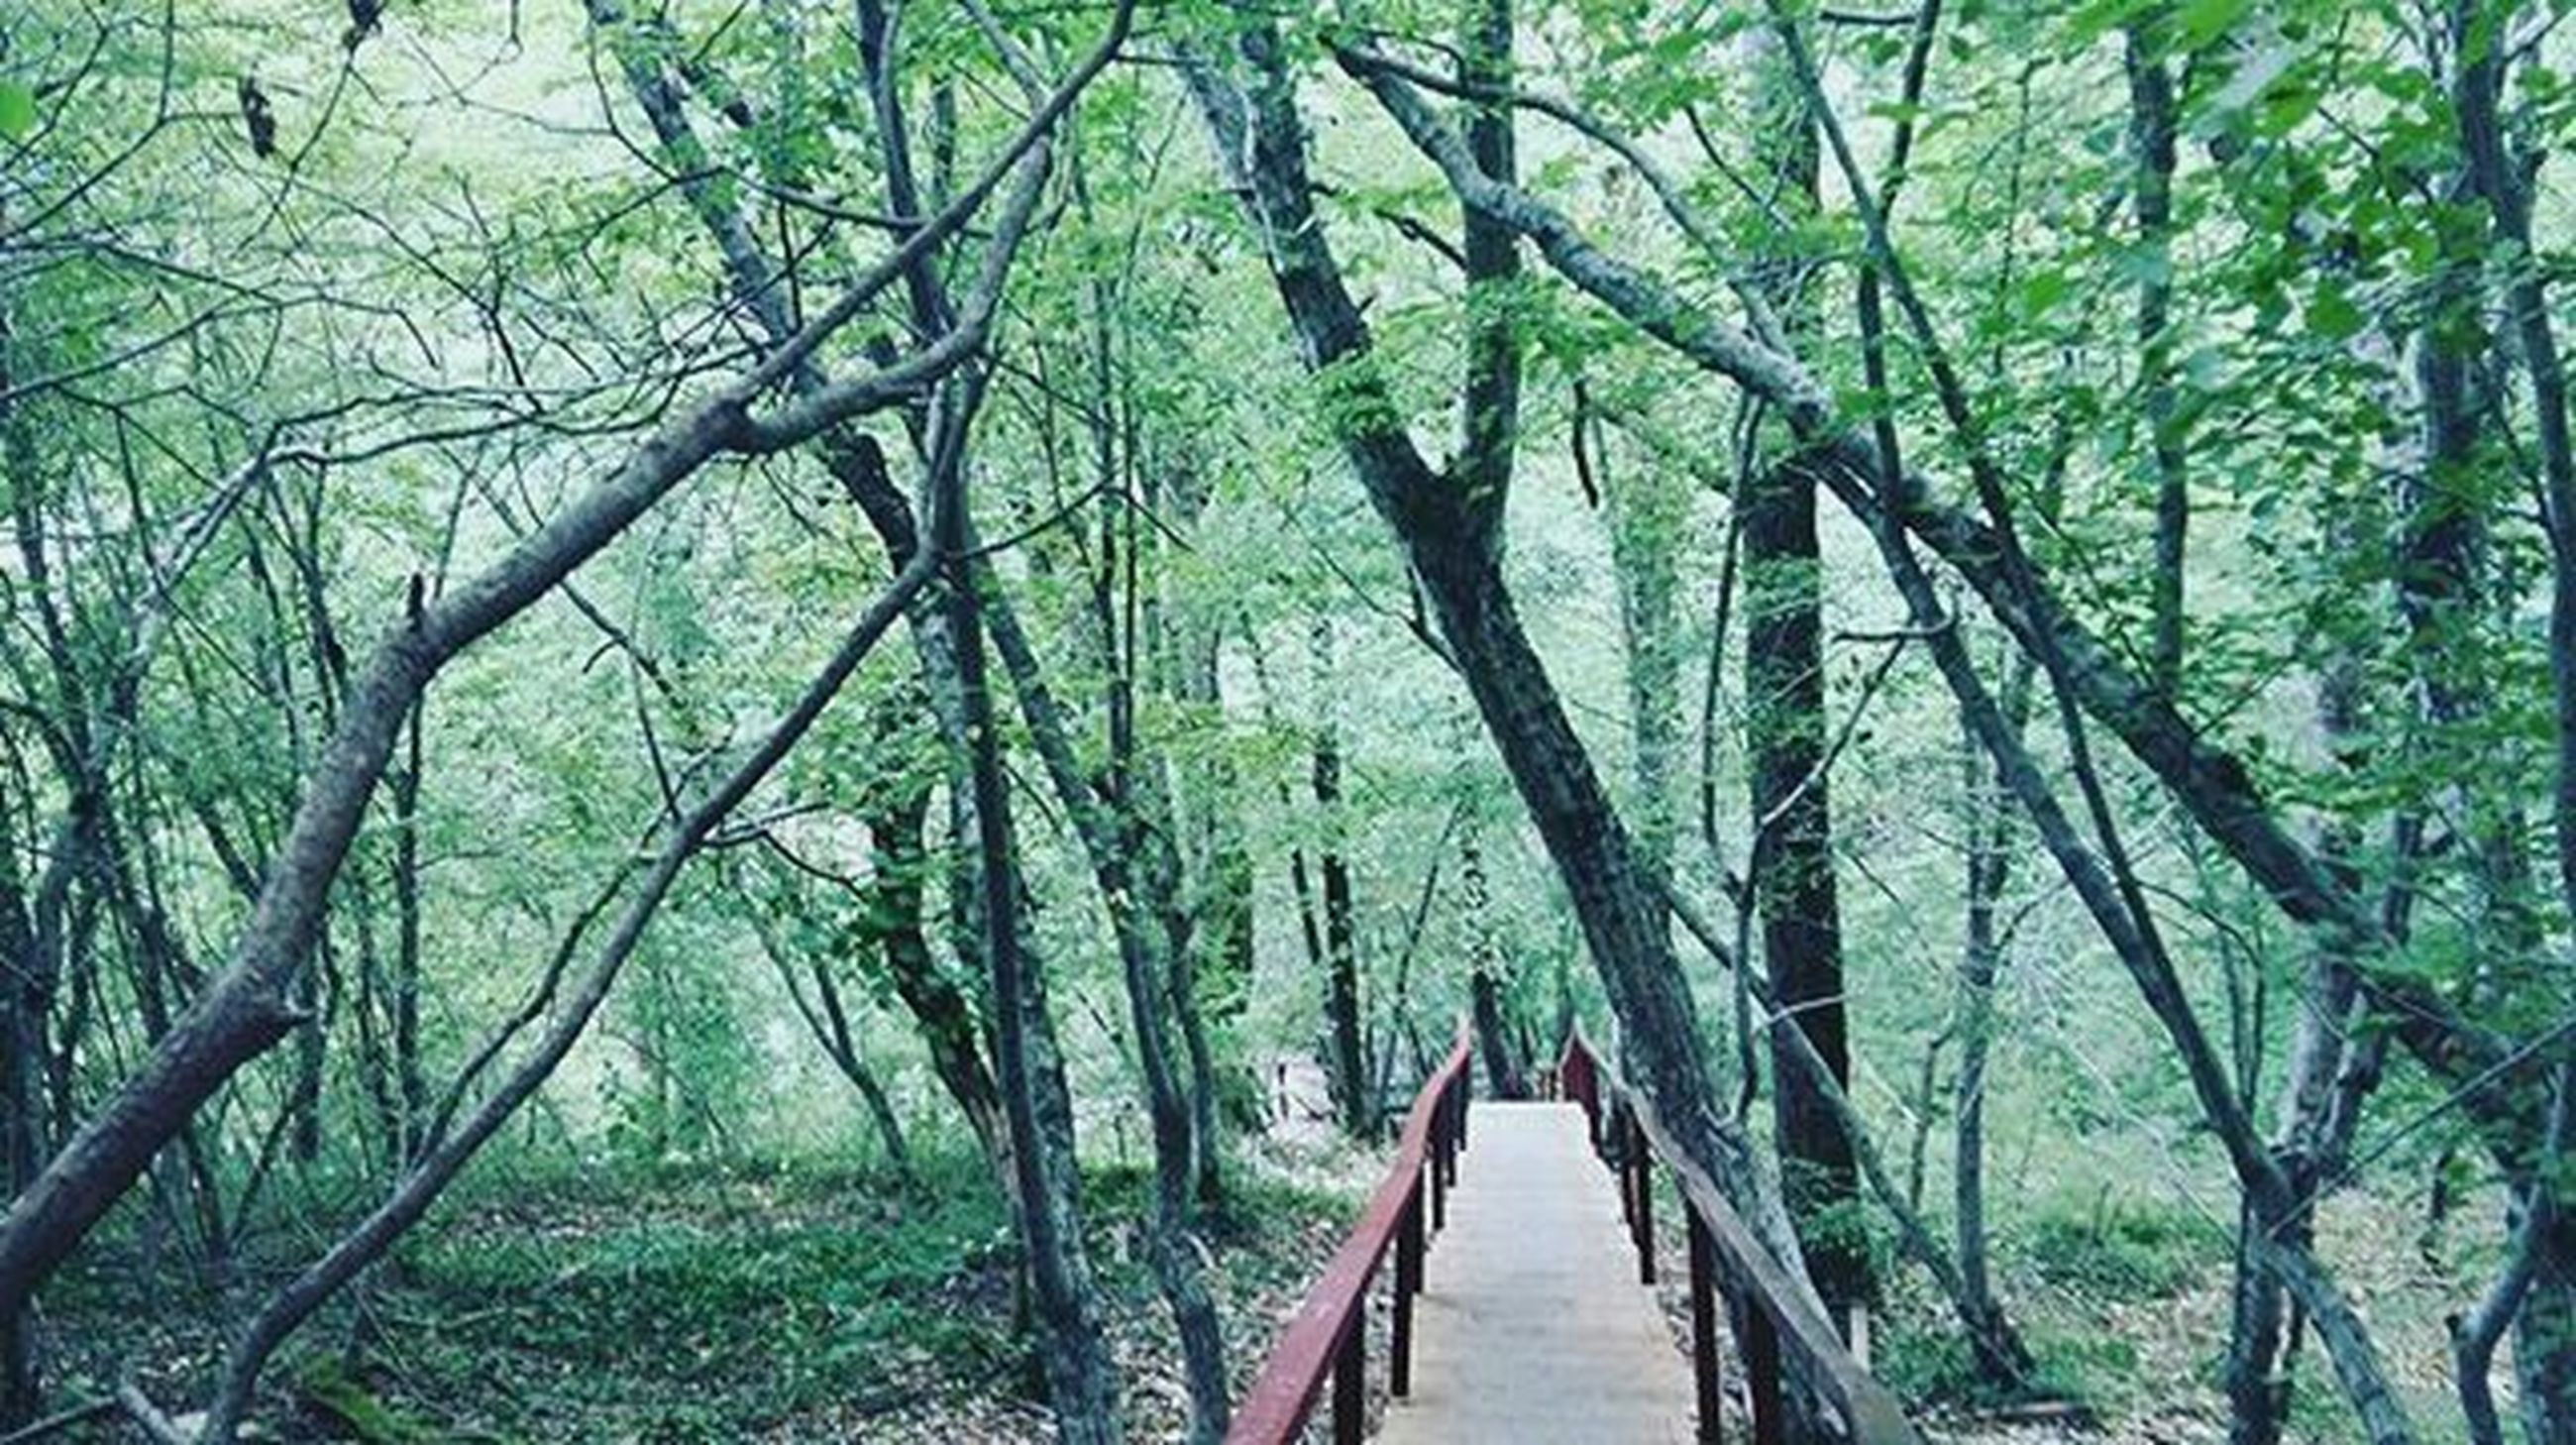 tree, rope bridge, nature, tranquility, green color, growth, outdoors, beauty in nature, day, forest, the way forward, no people, connection, bridge - man made structure, bamboo grove, lush - description